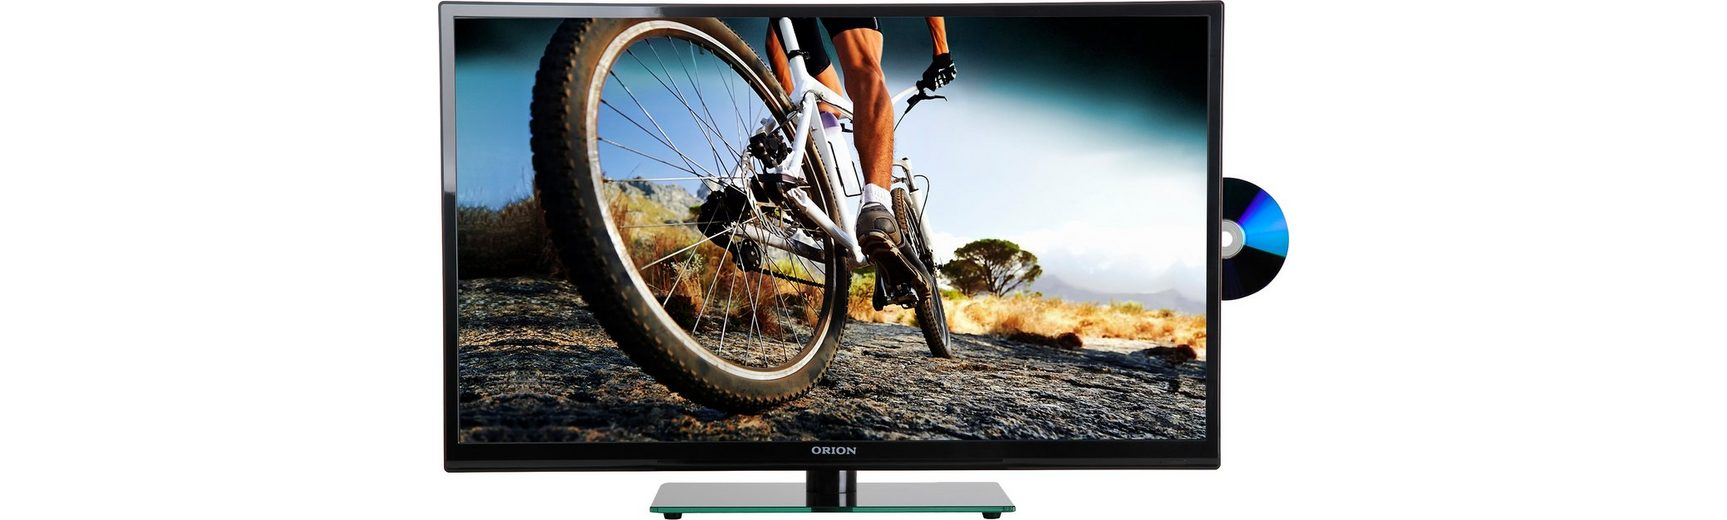 Orion CLB32B880DS, LED Fernseher, 80 cm (32 Zoll), HD-ready 720p